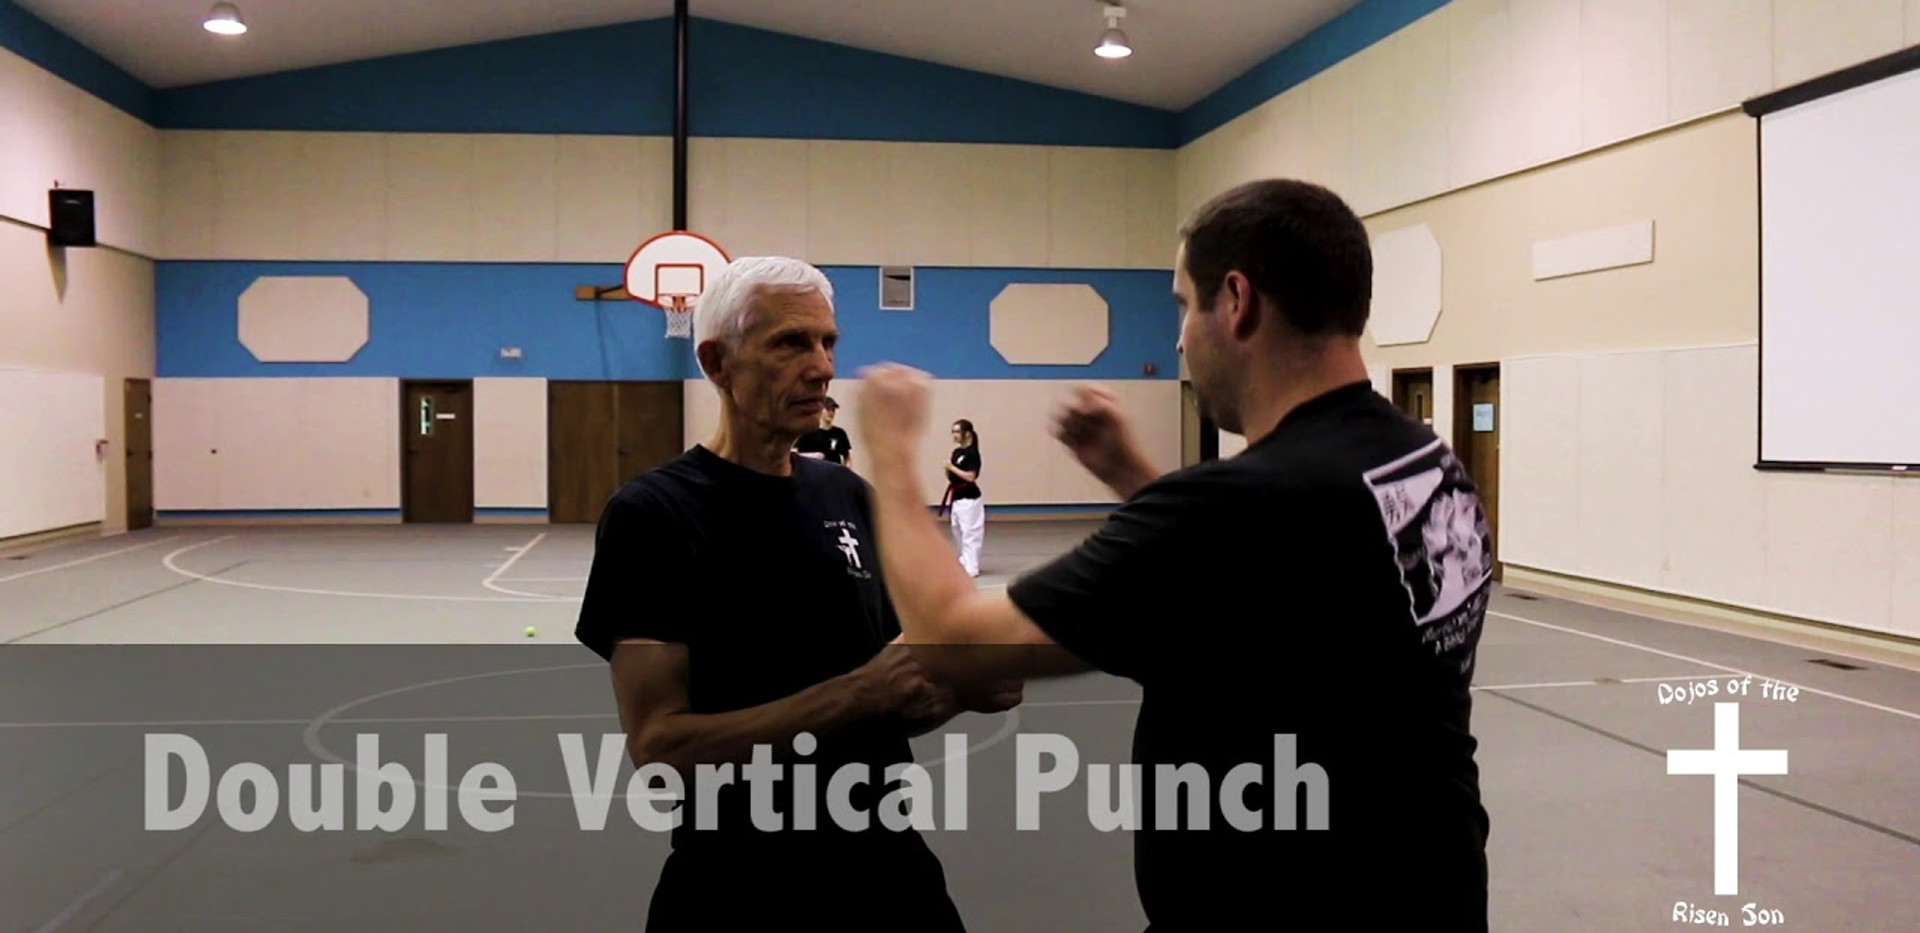 Double Vertical Punch